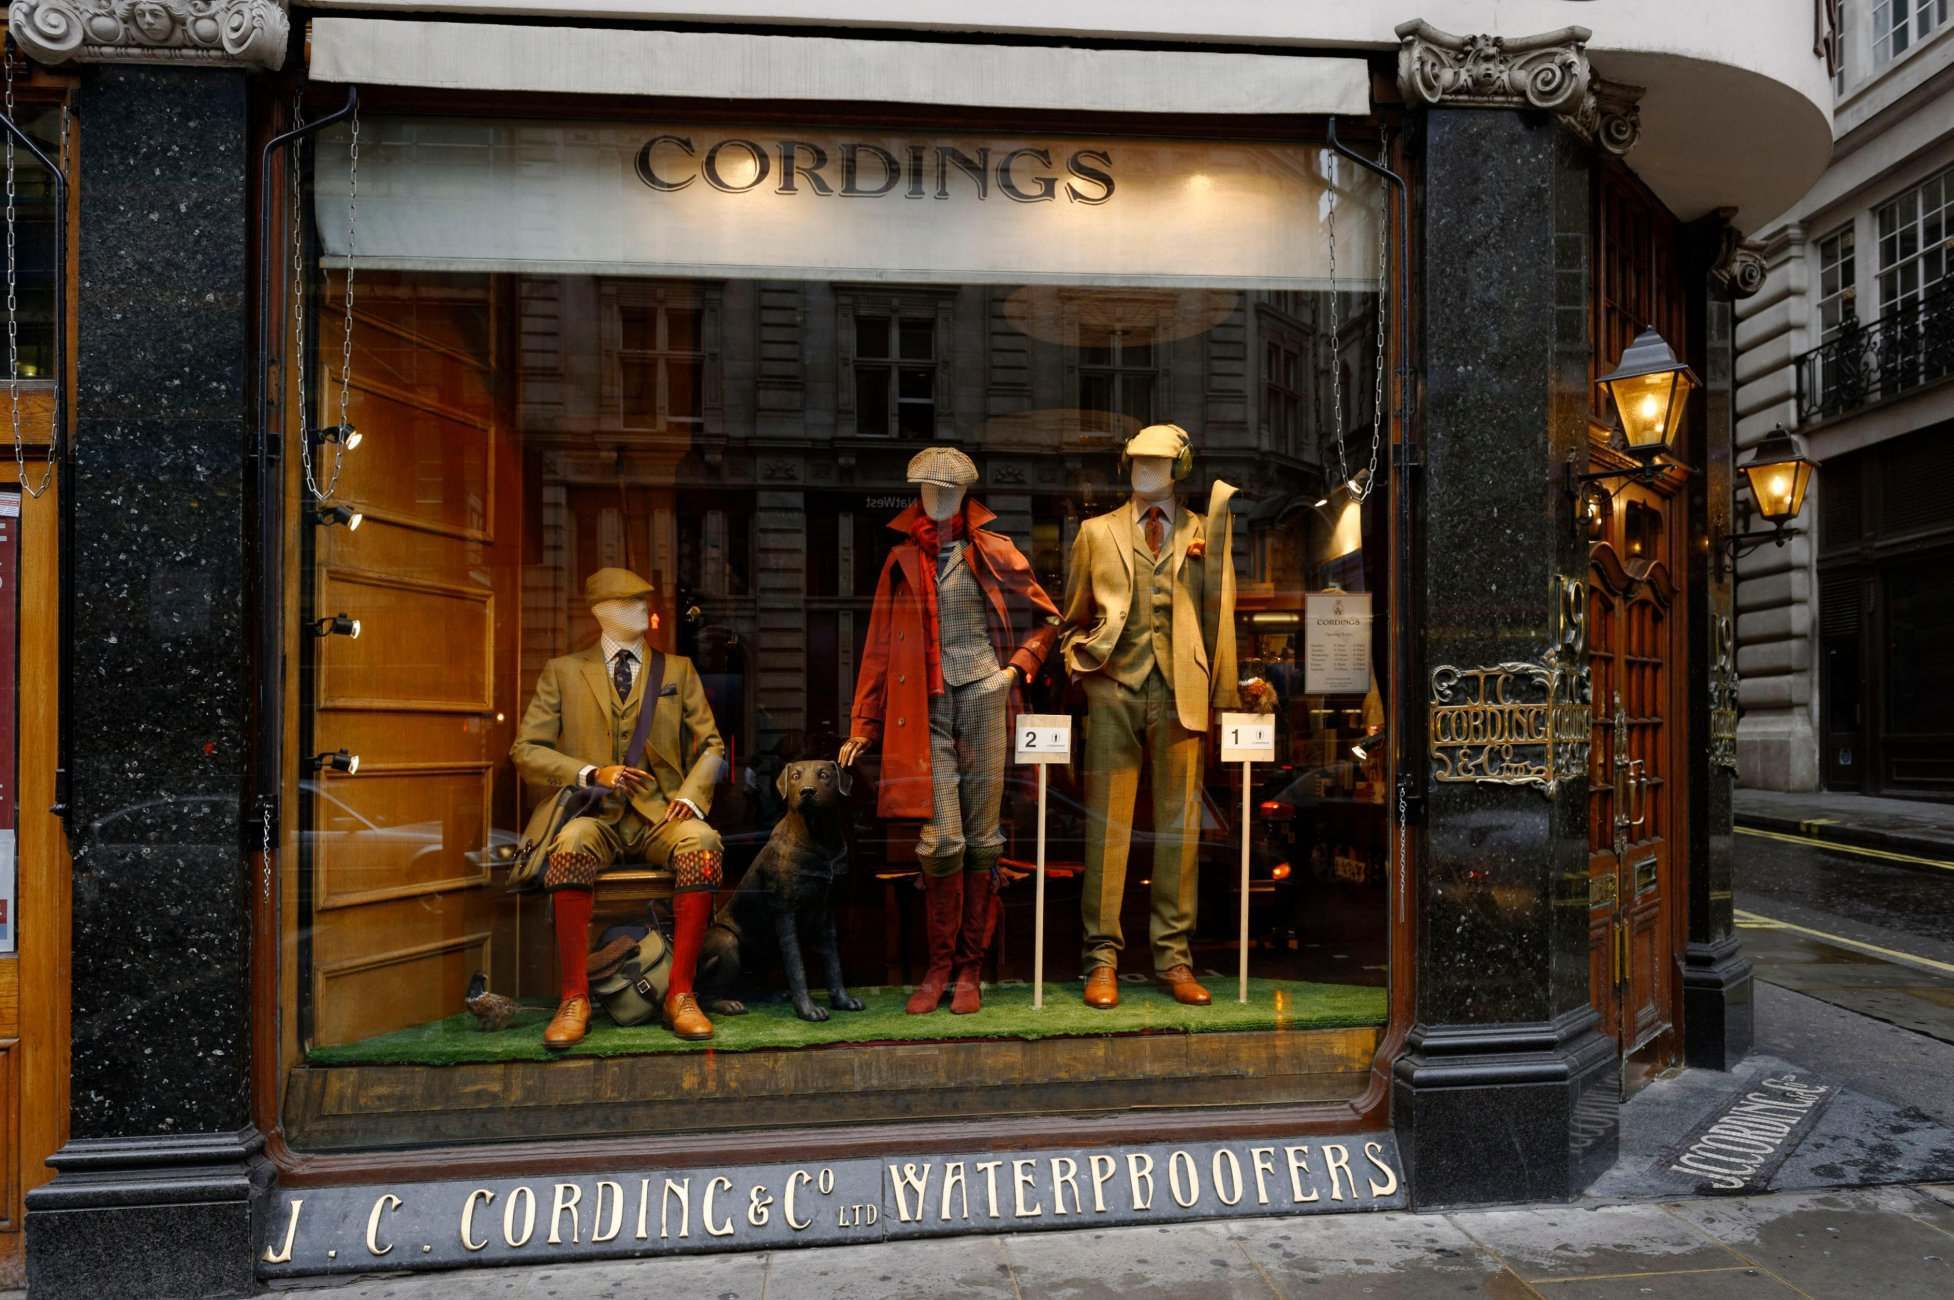 Cordings window facing onto Piccadilly.